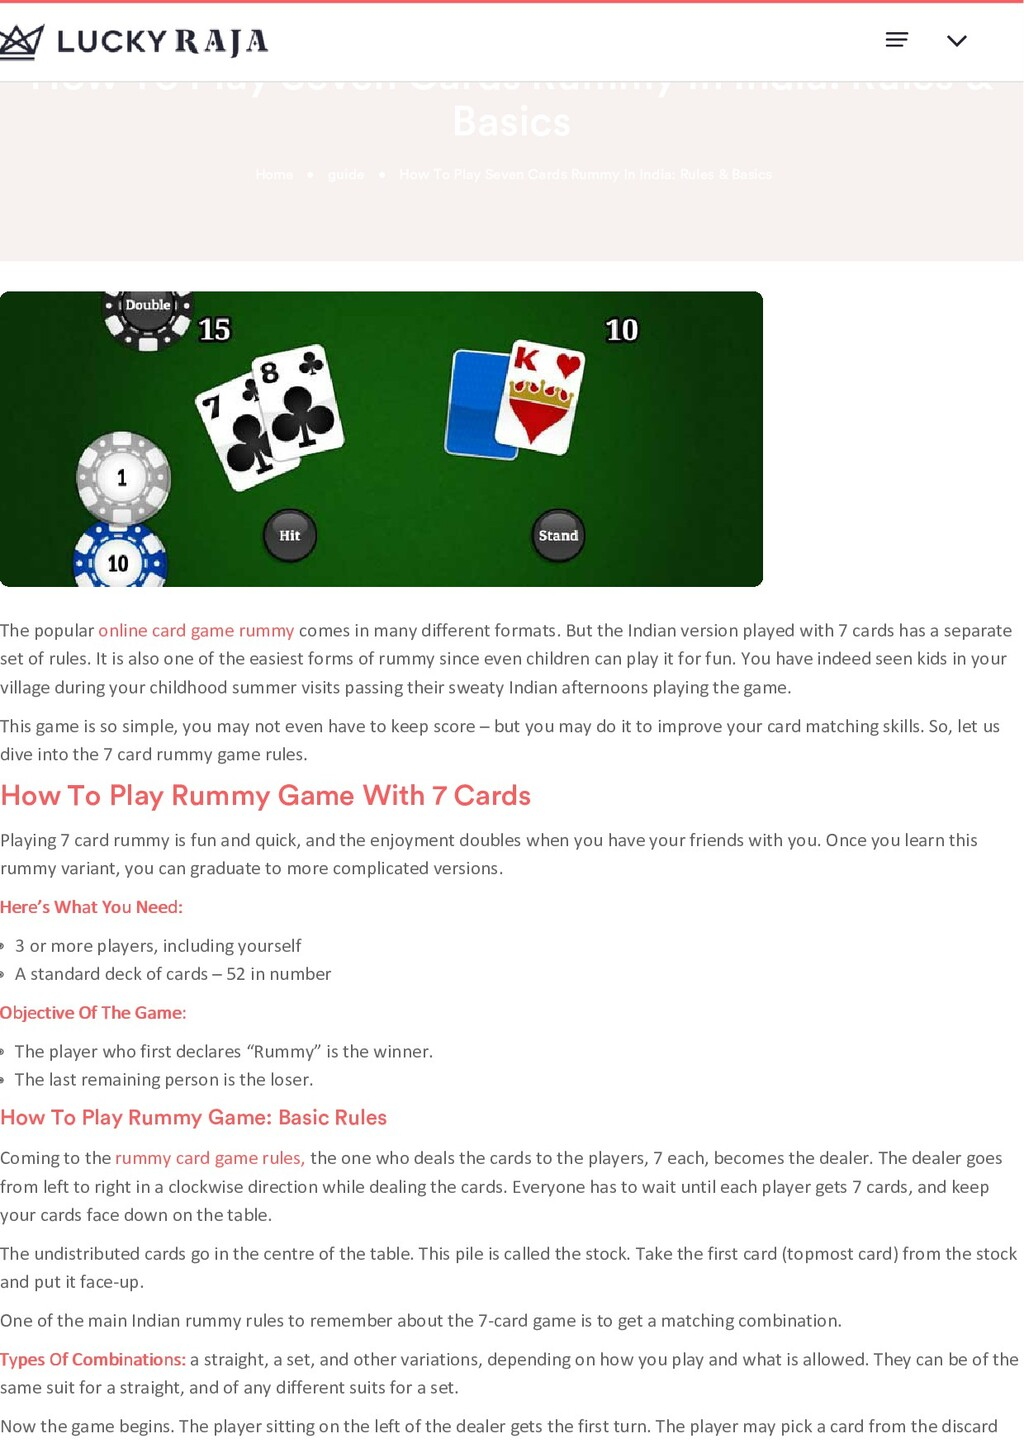 How To Play Seven Cards Rummy In India: Rules &...